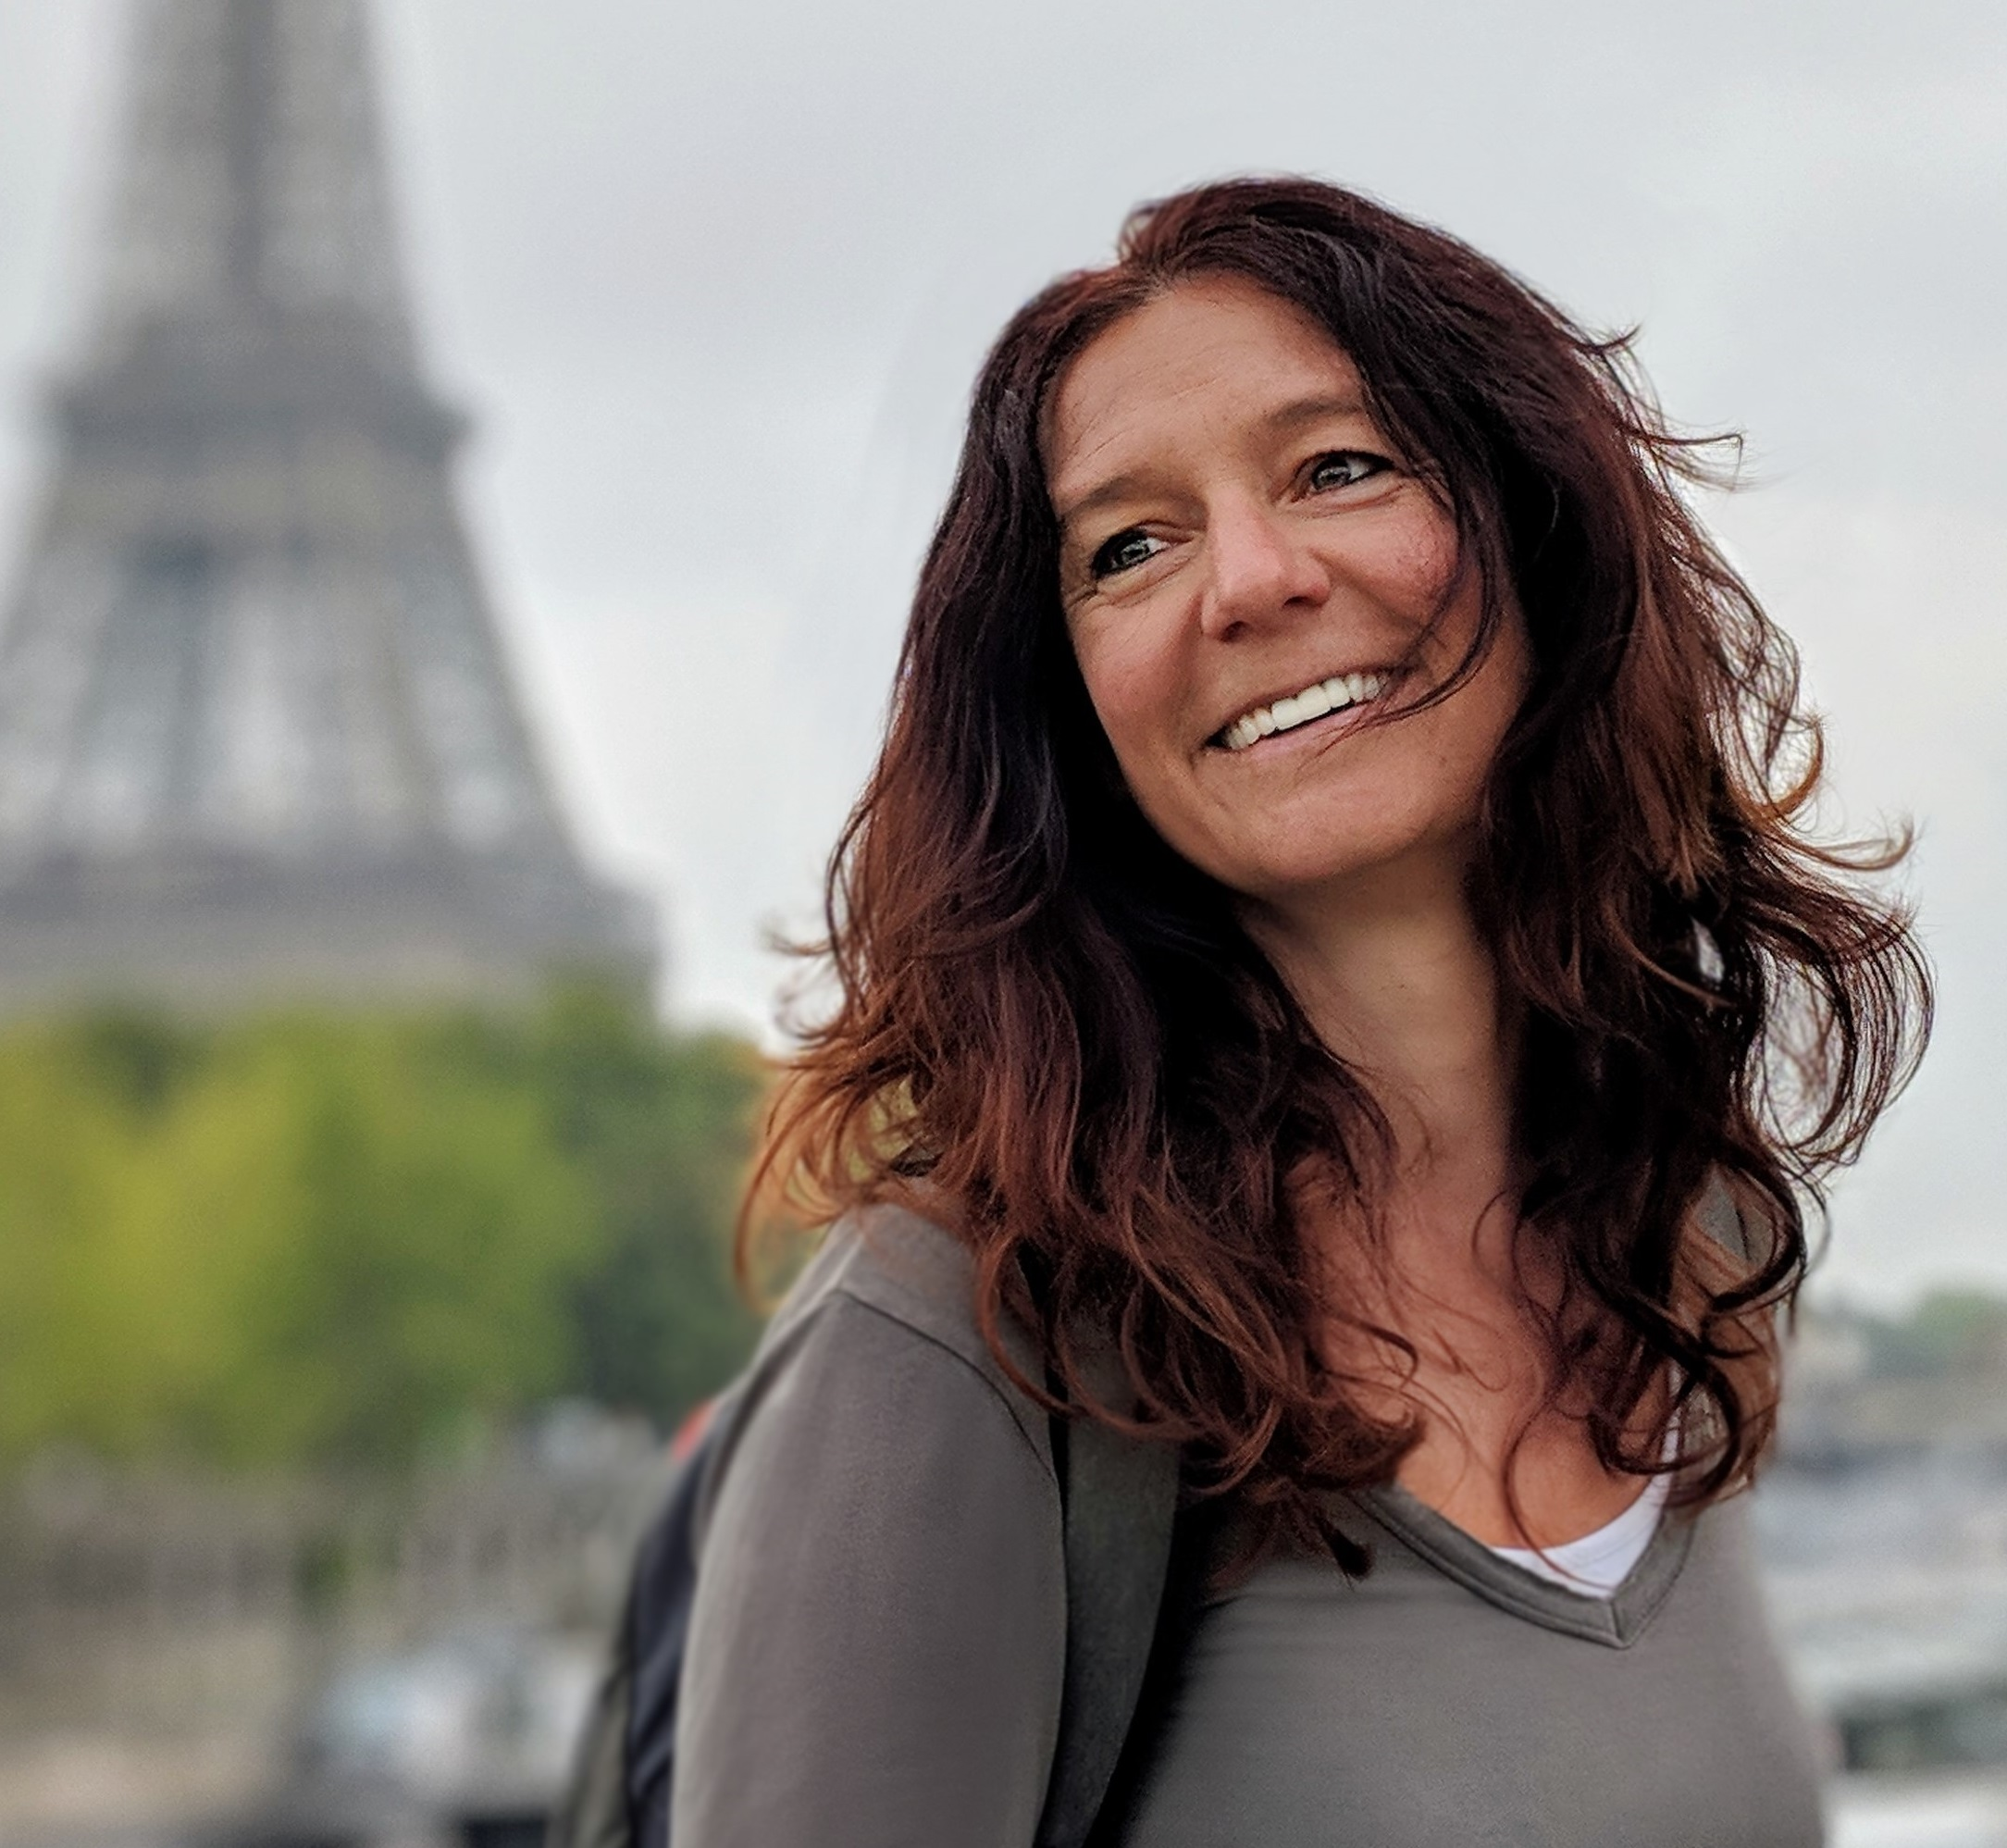 Health Coach Stella Loichot in Paris